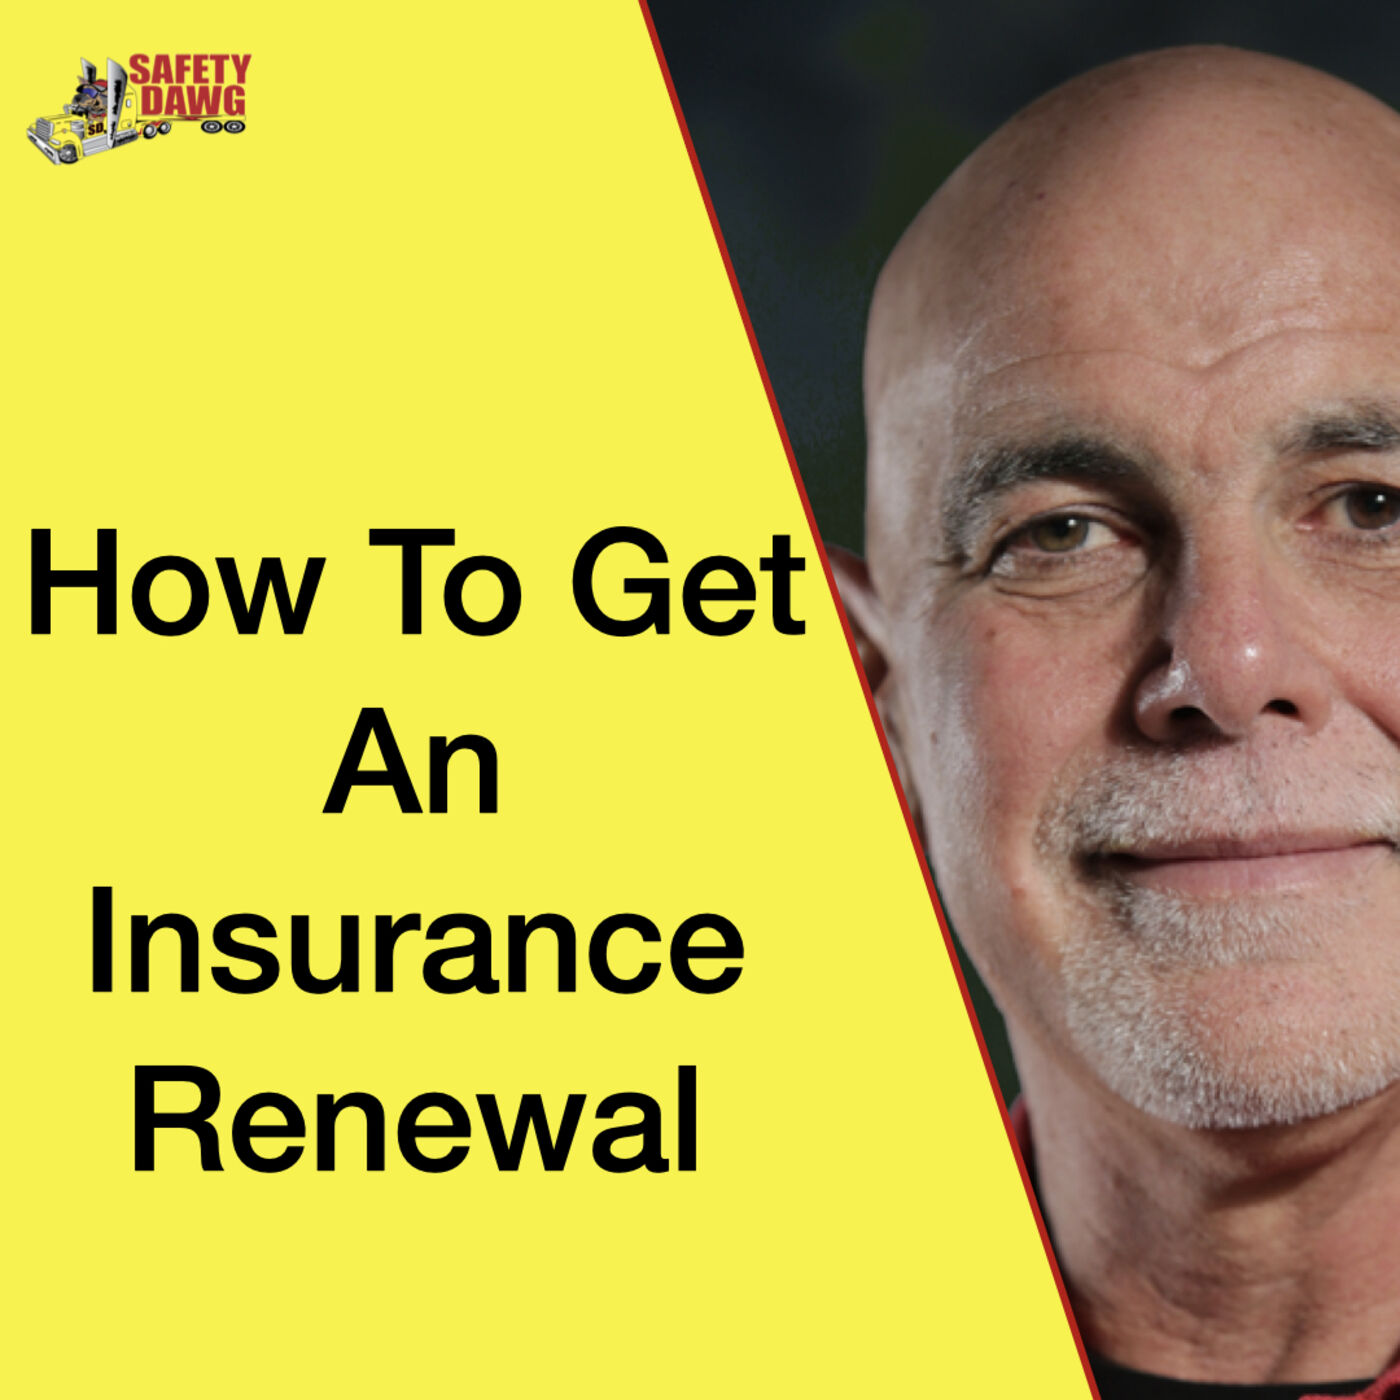 31. Trucking Insurance Renewal, How To Get An Insurance Renewal